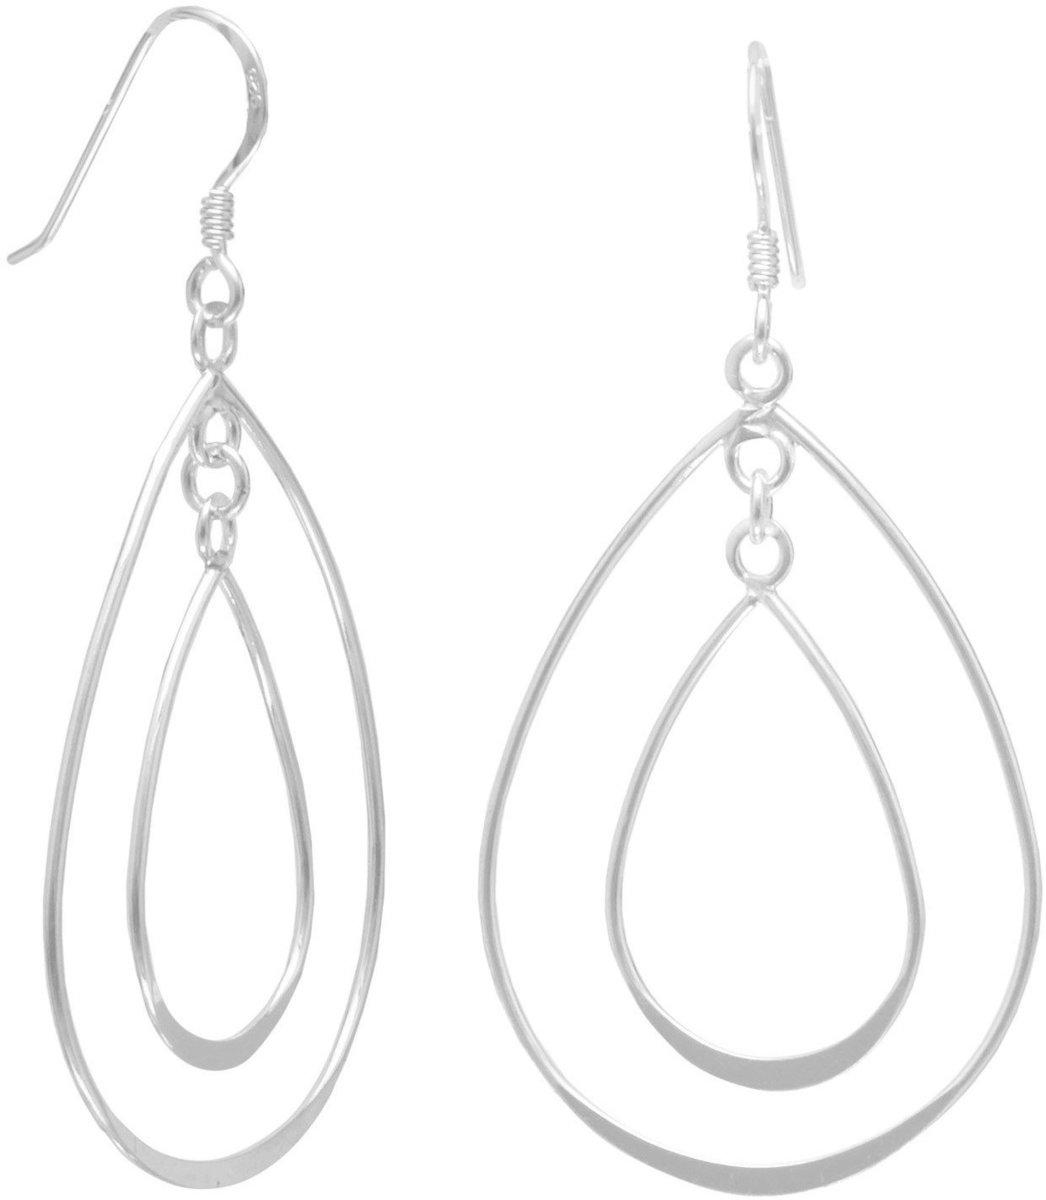 Double Pear Shape French Wire Earrings 925 Sterling Silver